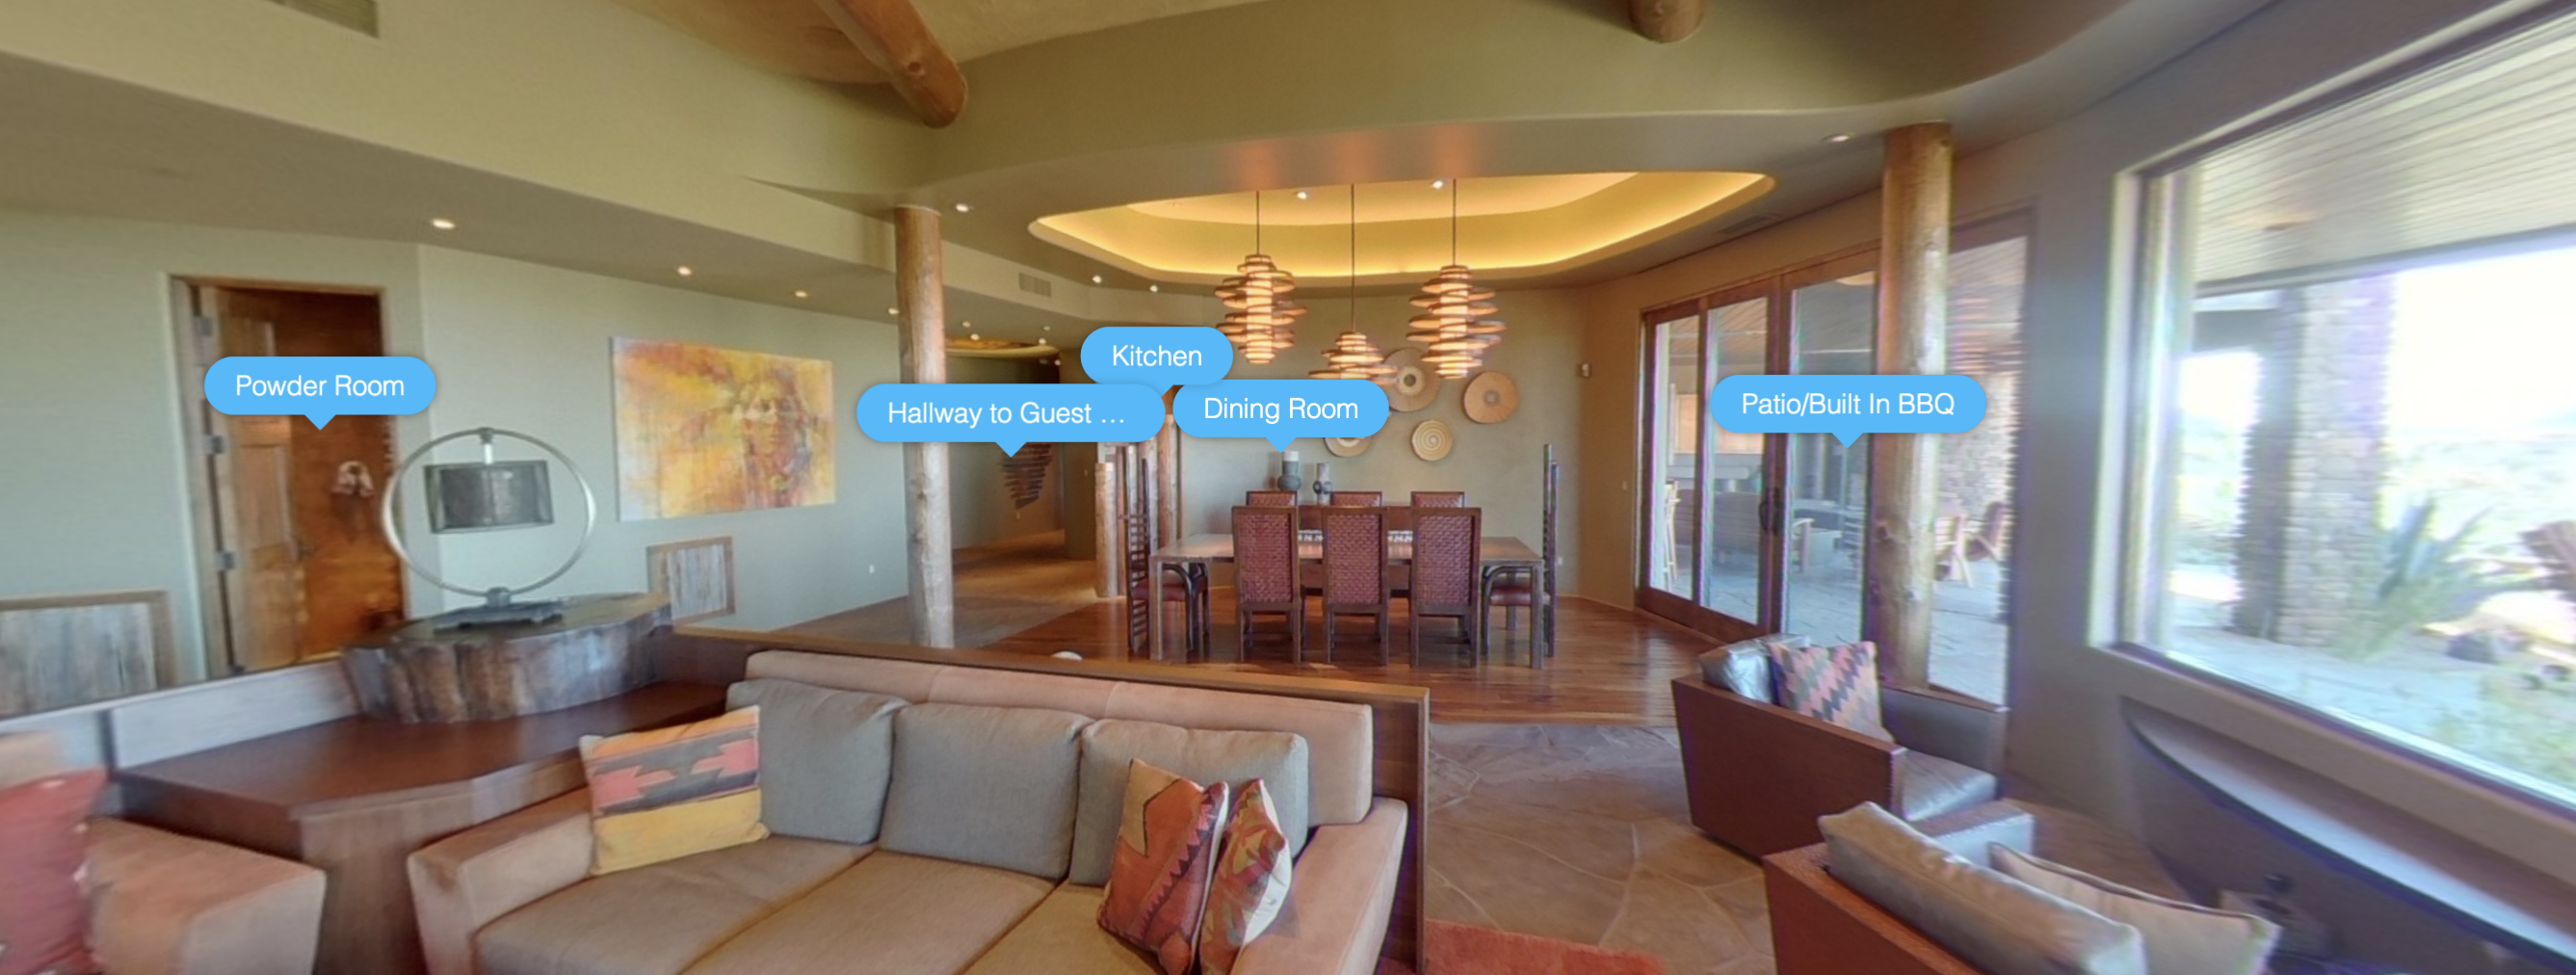 360 degree photo of real estate in North Scottsdale